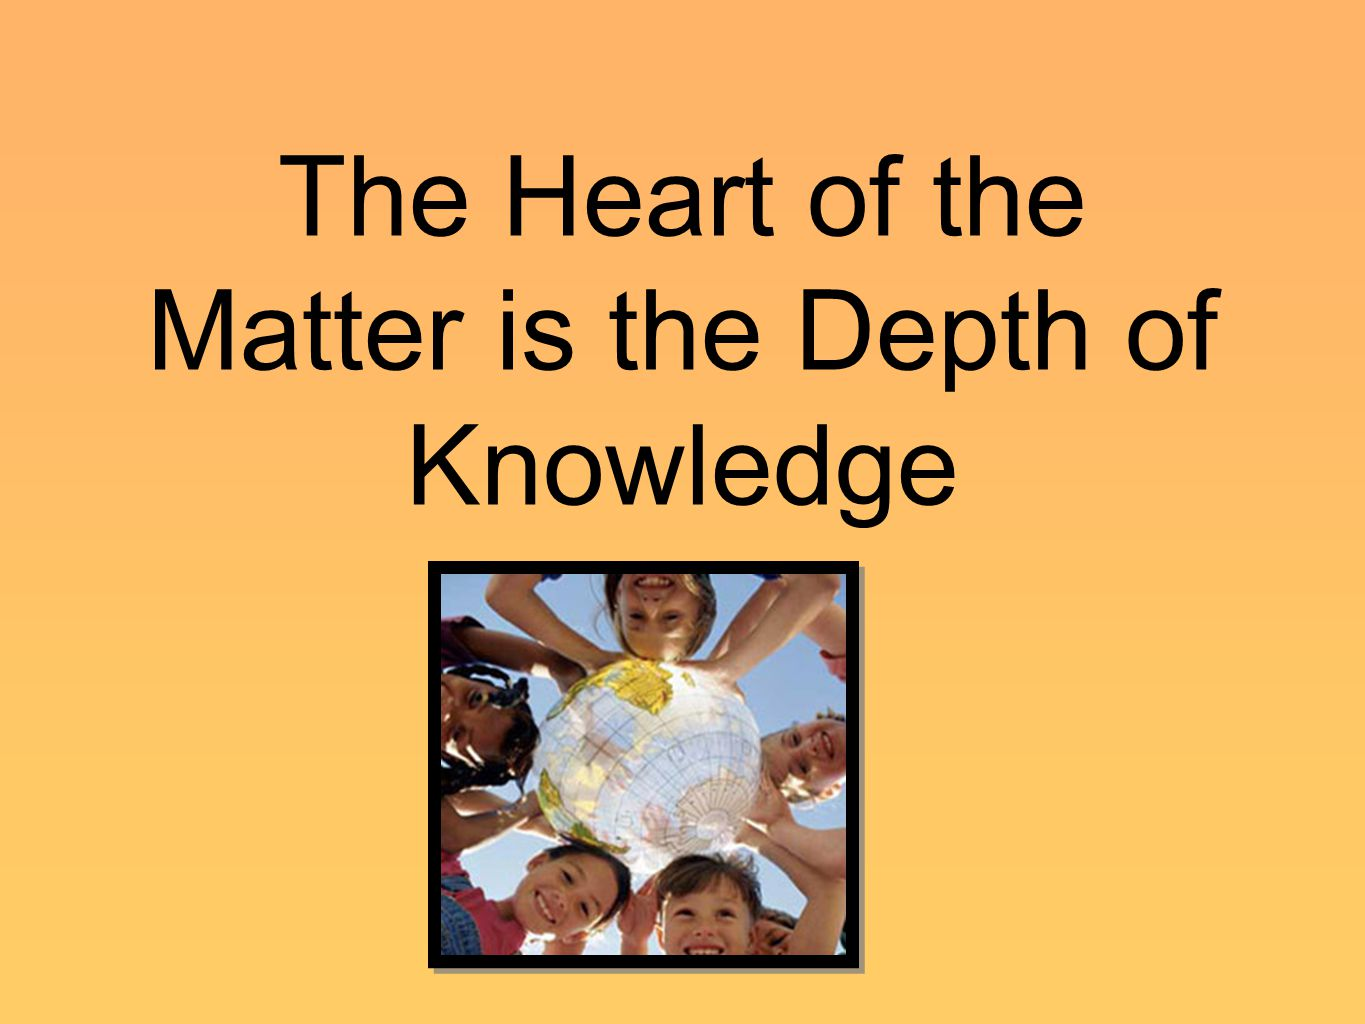 The Heart of the Matter is the Depth of Knowledge